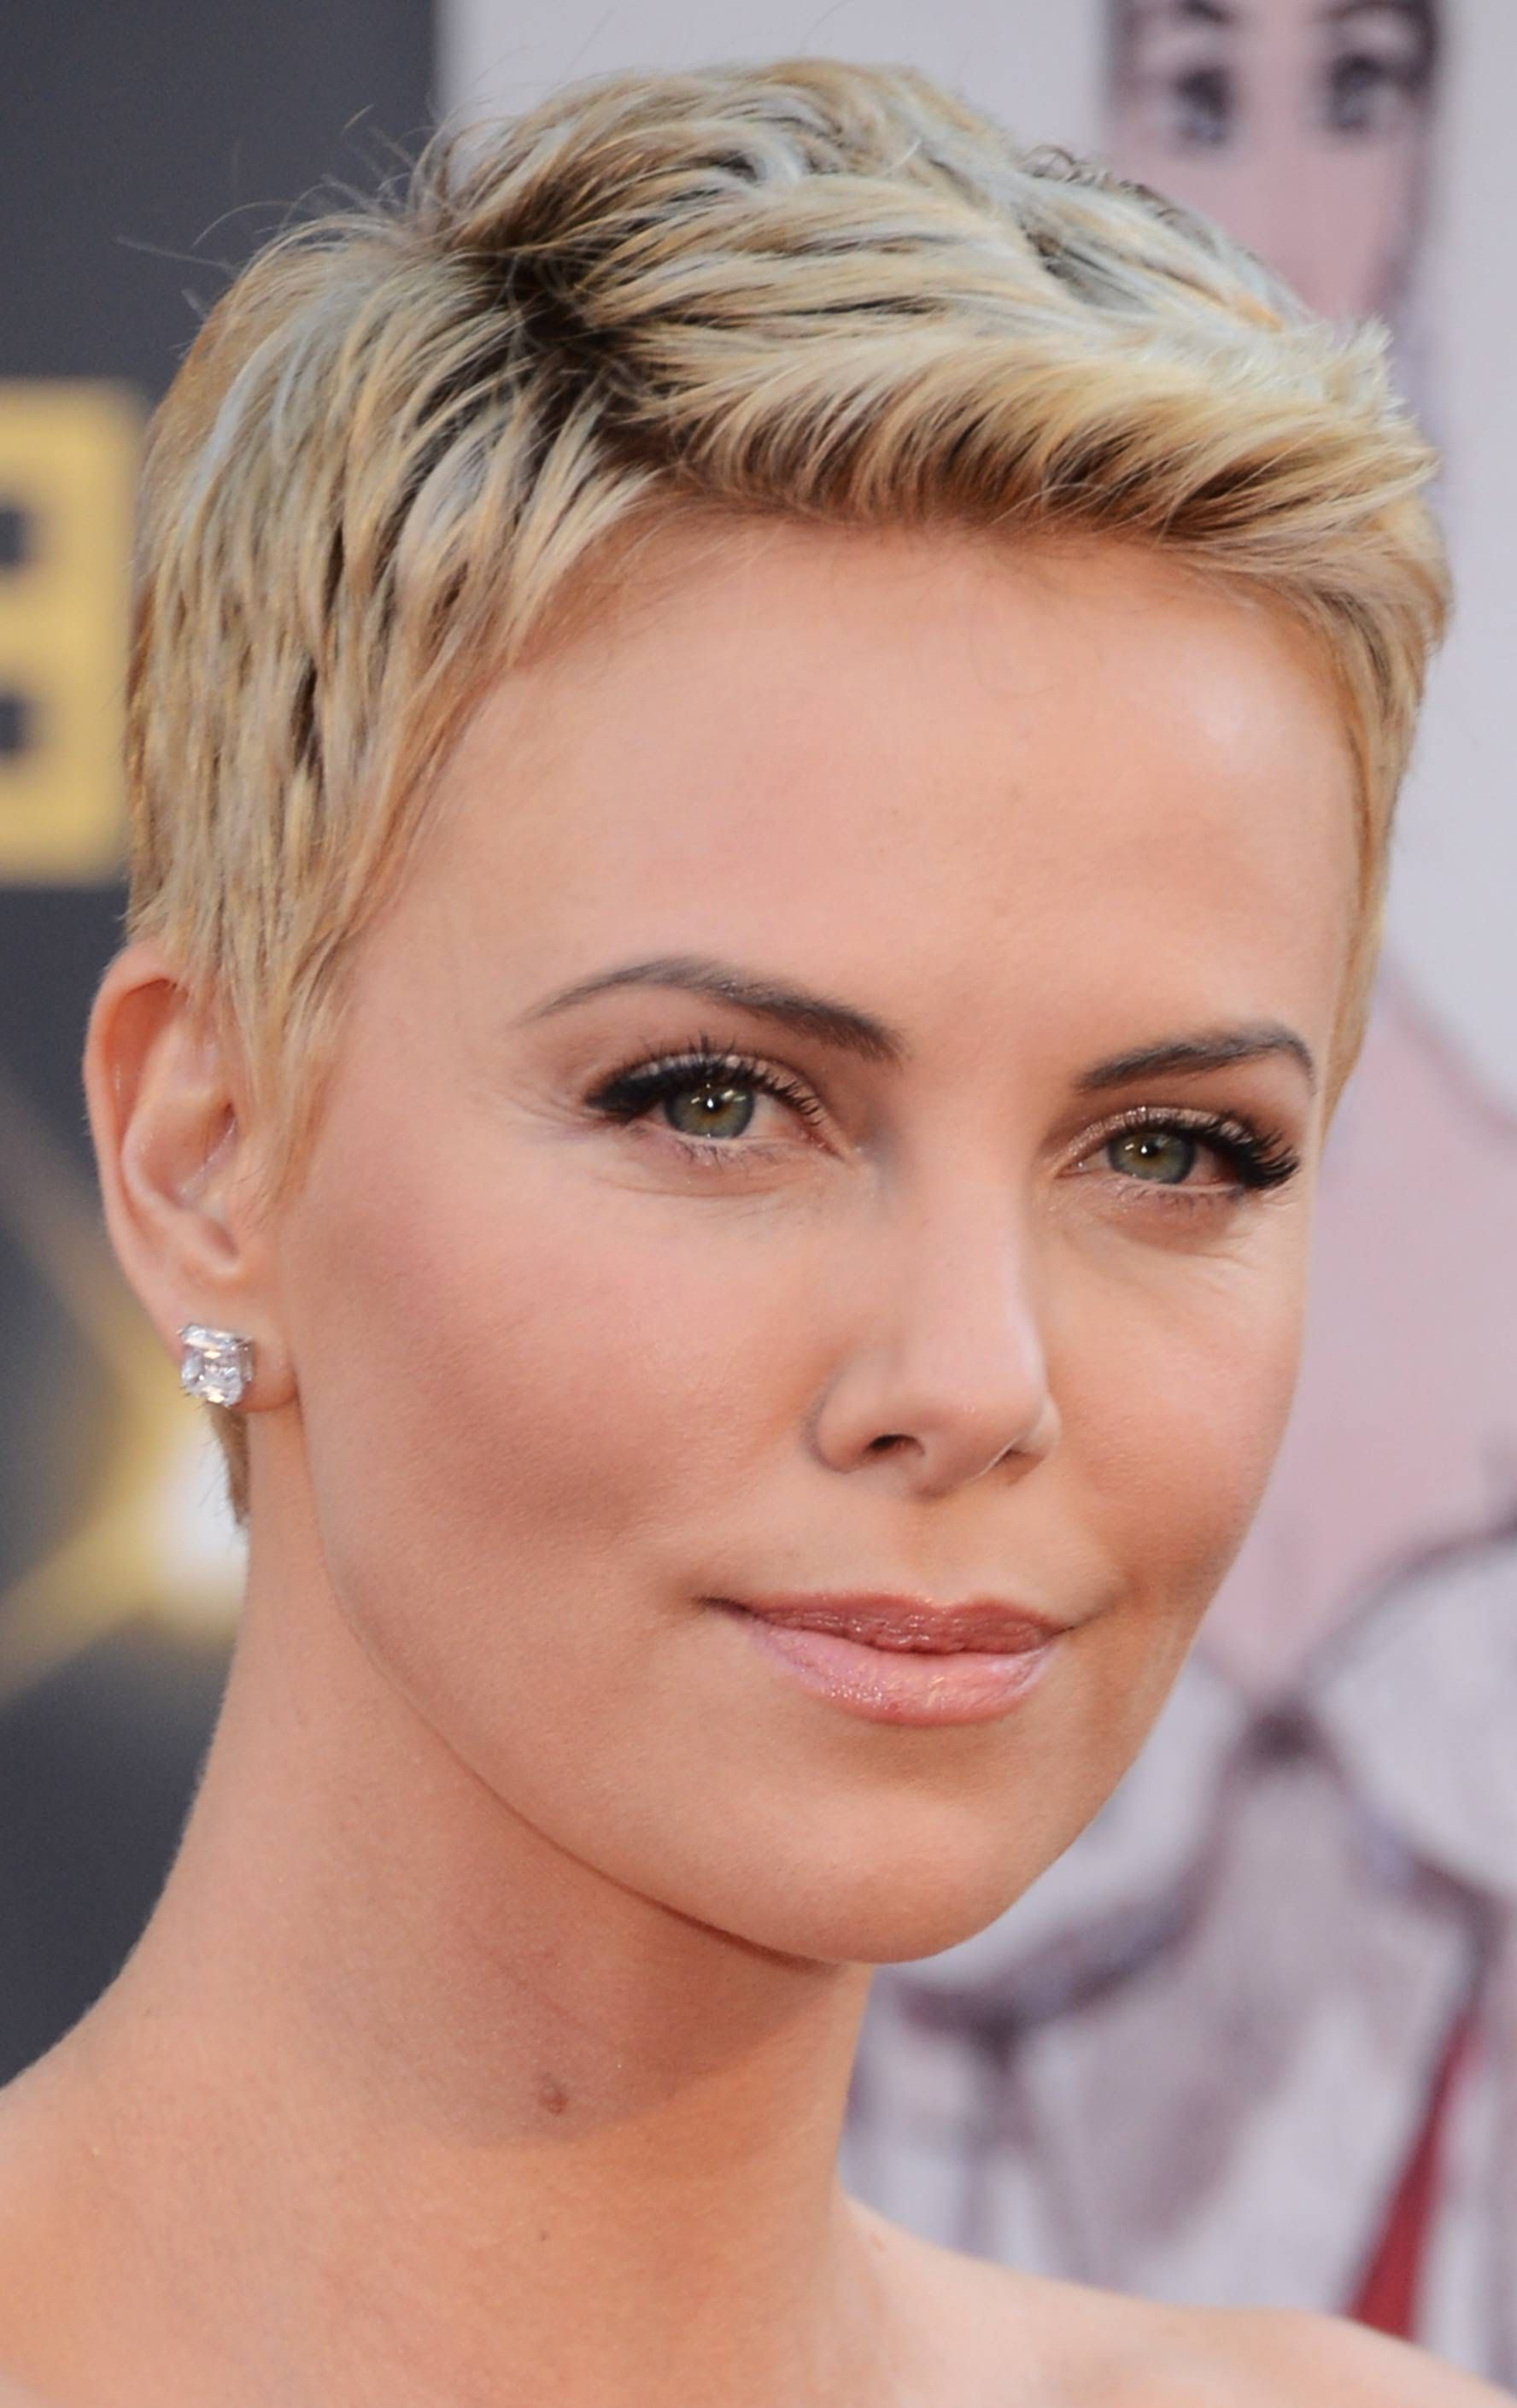 20 Flattering Hairstyles For Oval Faces | Shorthair | Pinterest Throughout Short Haircuts For Oblong Face (View 8 of 25)